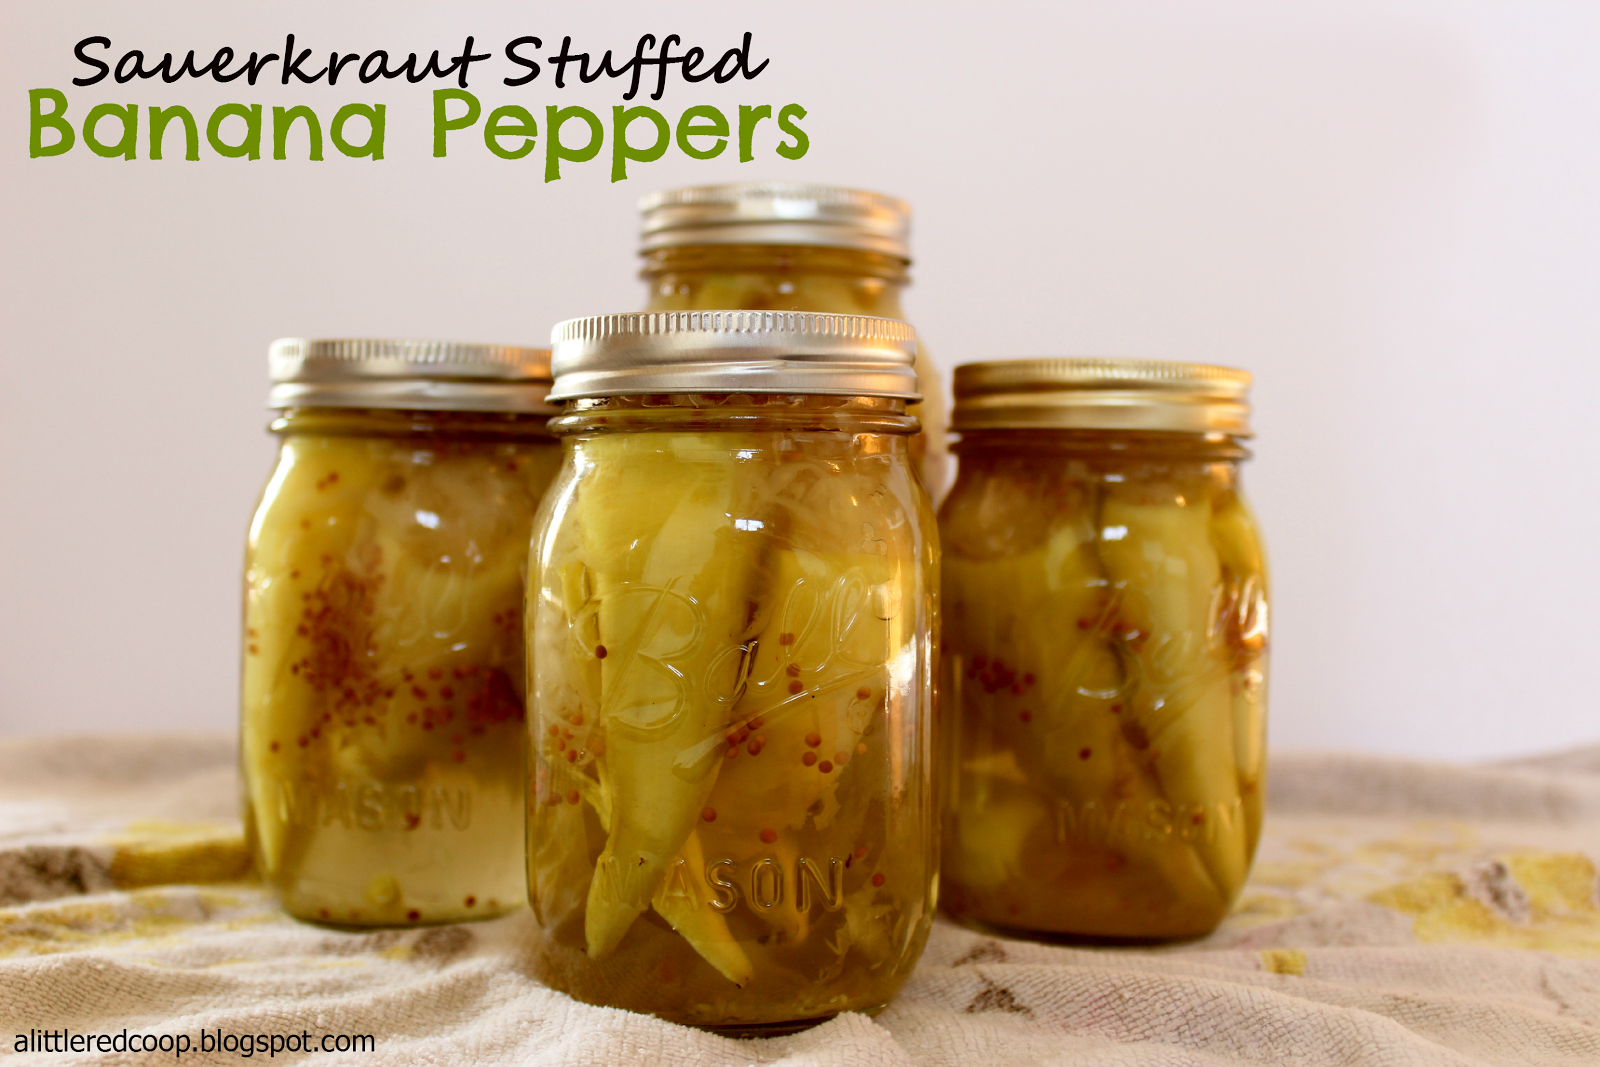 Sauerkraut Stuffed Banana Peppers Stuffed Banana Peppers Stuffed Peppers Sauerkraut